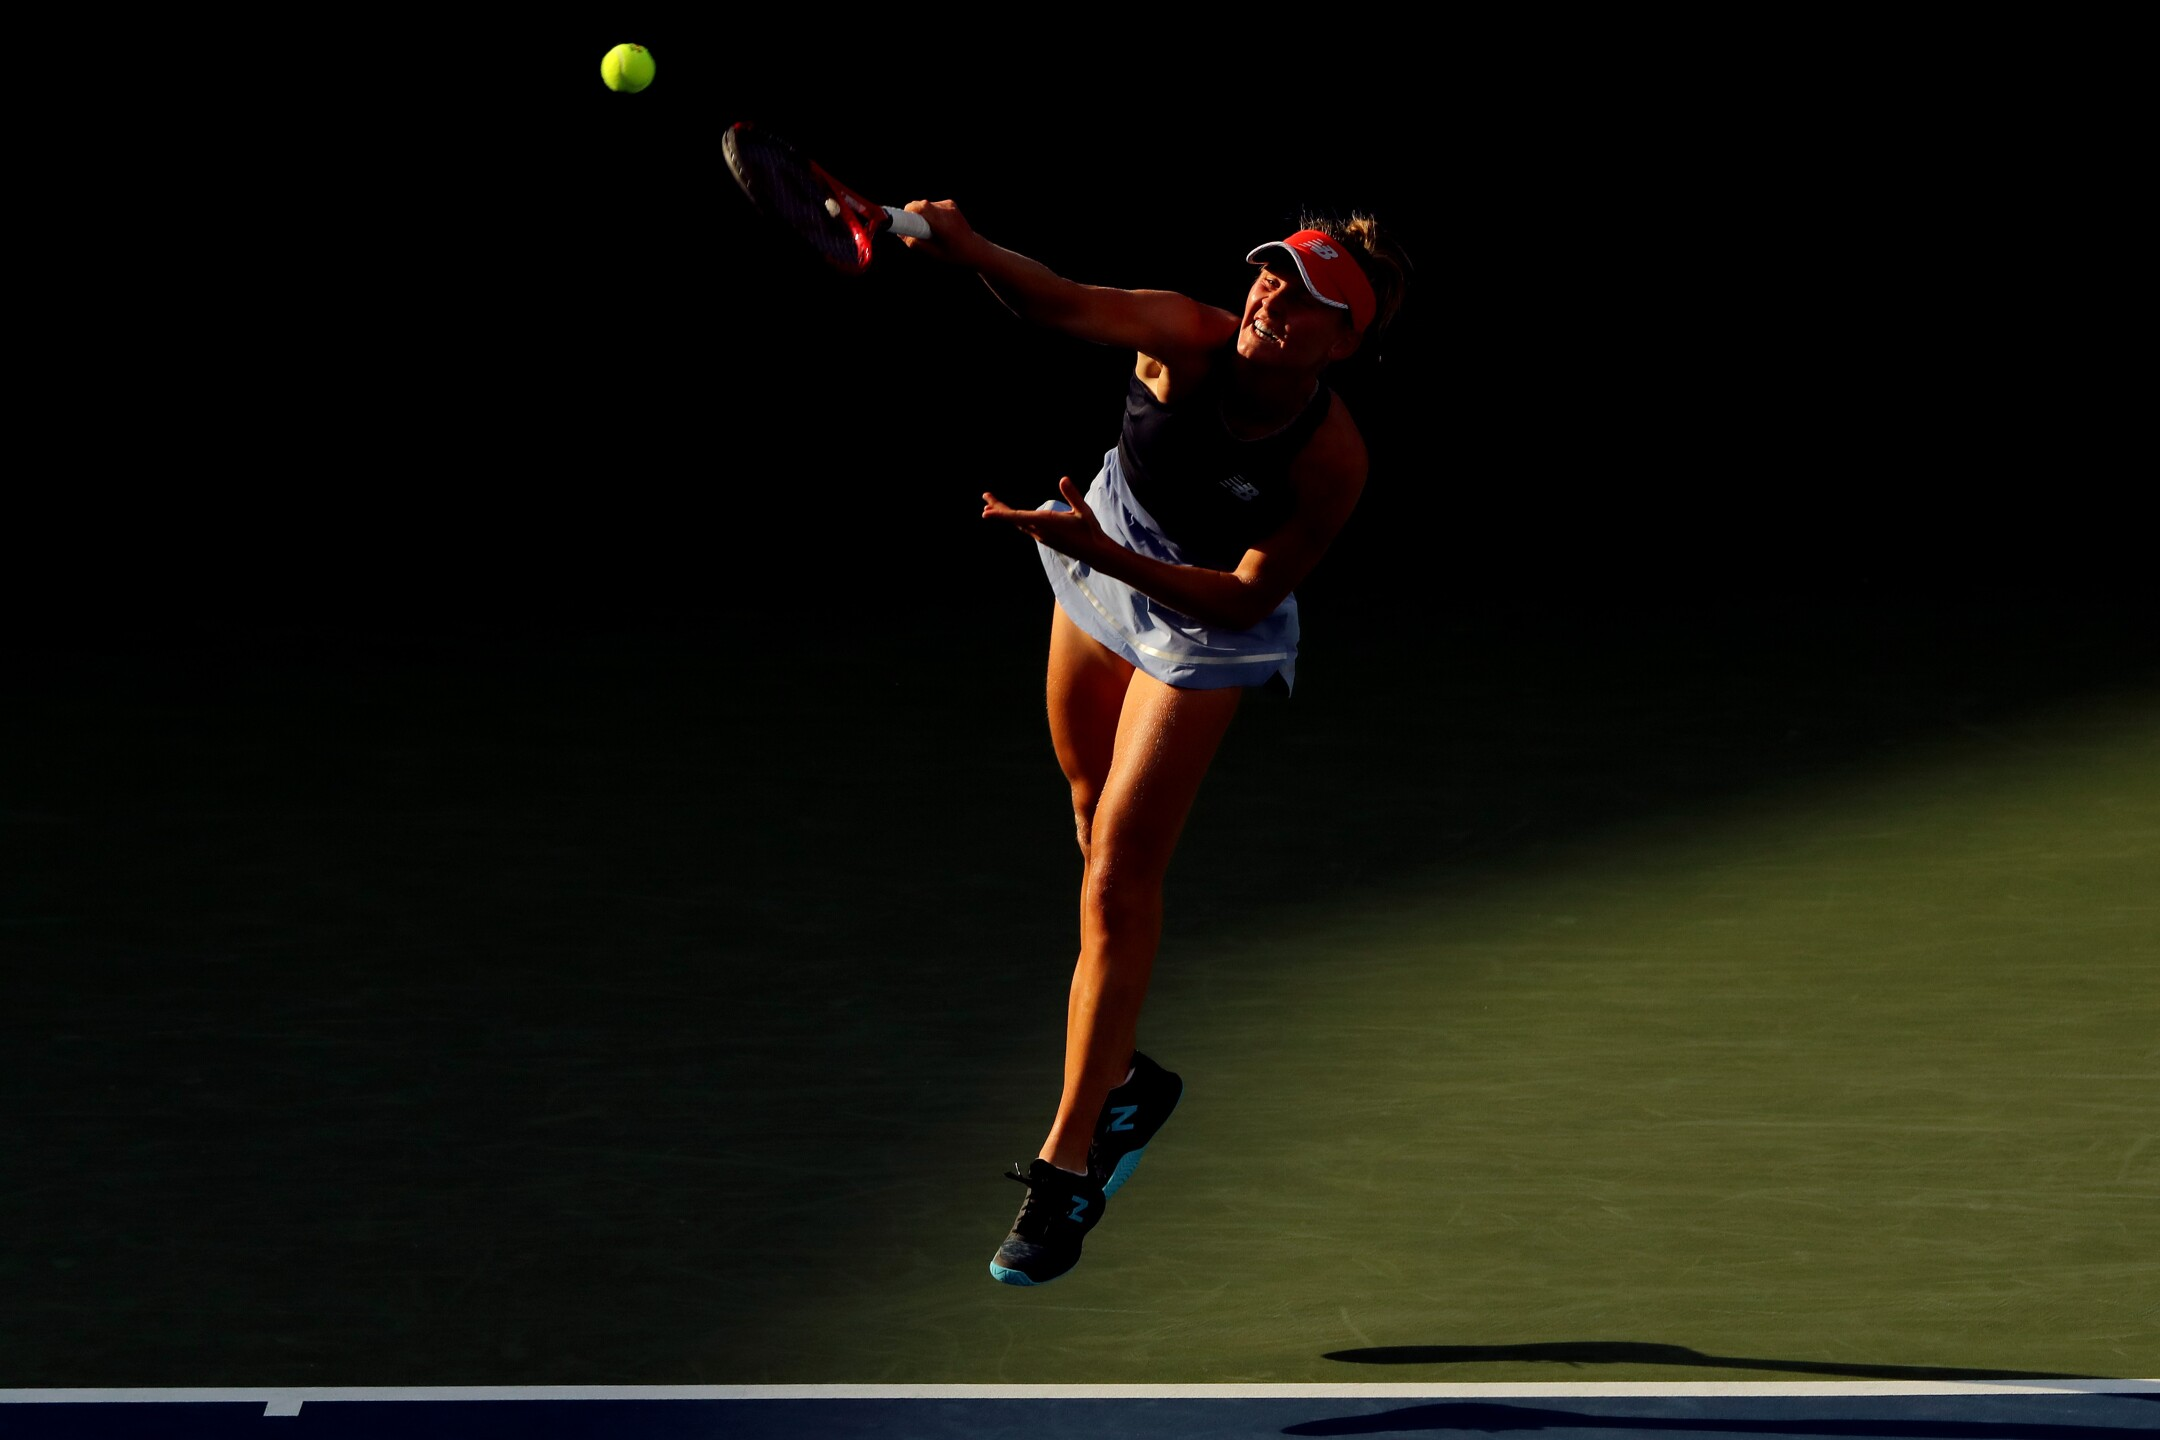 2019 US Open - Day 5